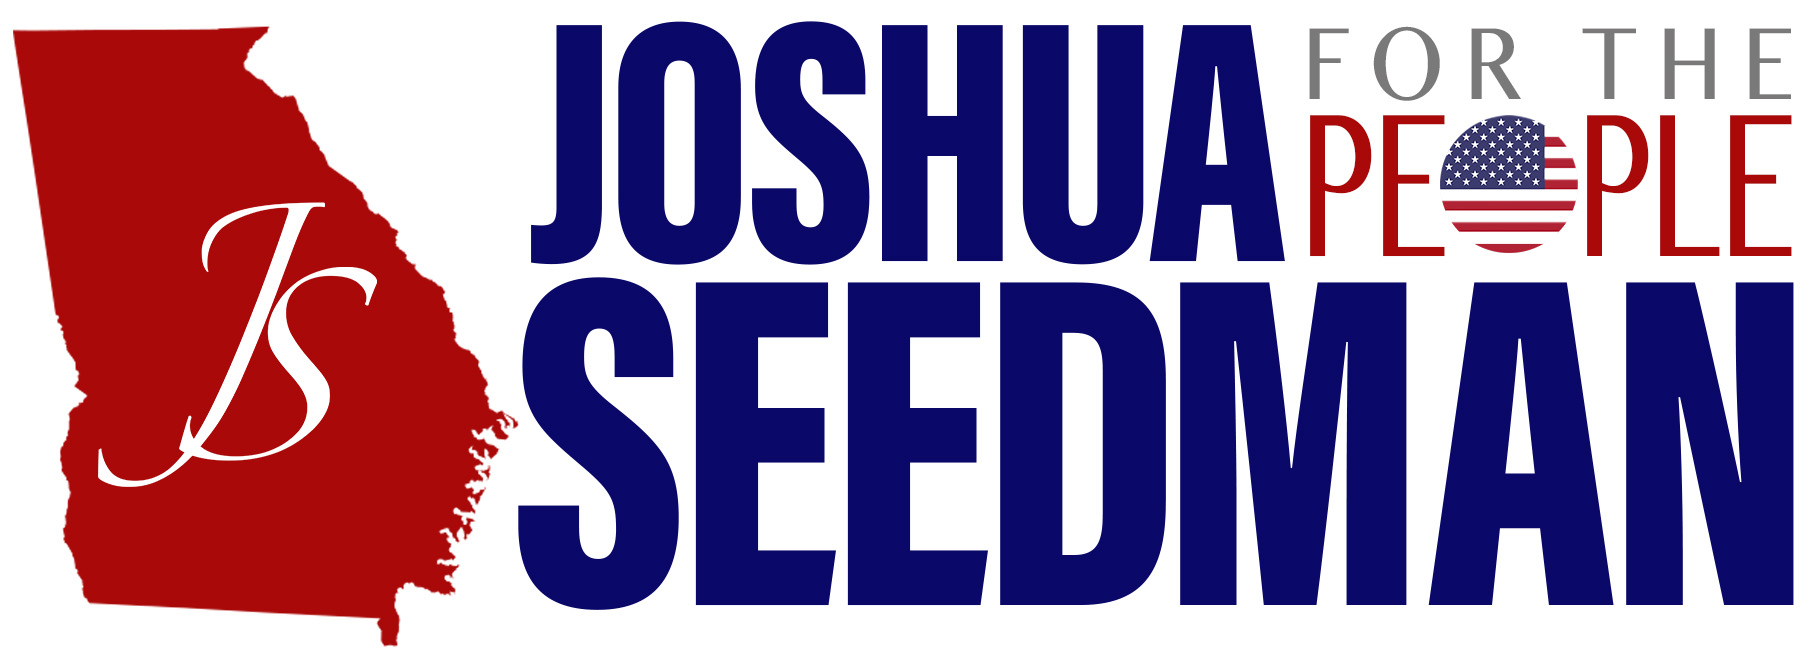 Alternate Logo - Joshua v2.jpg